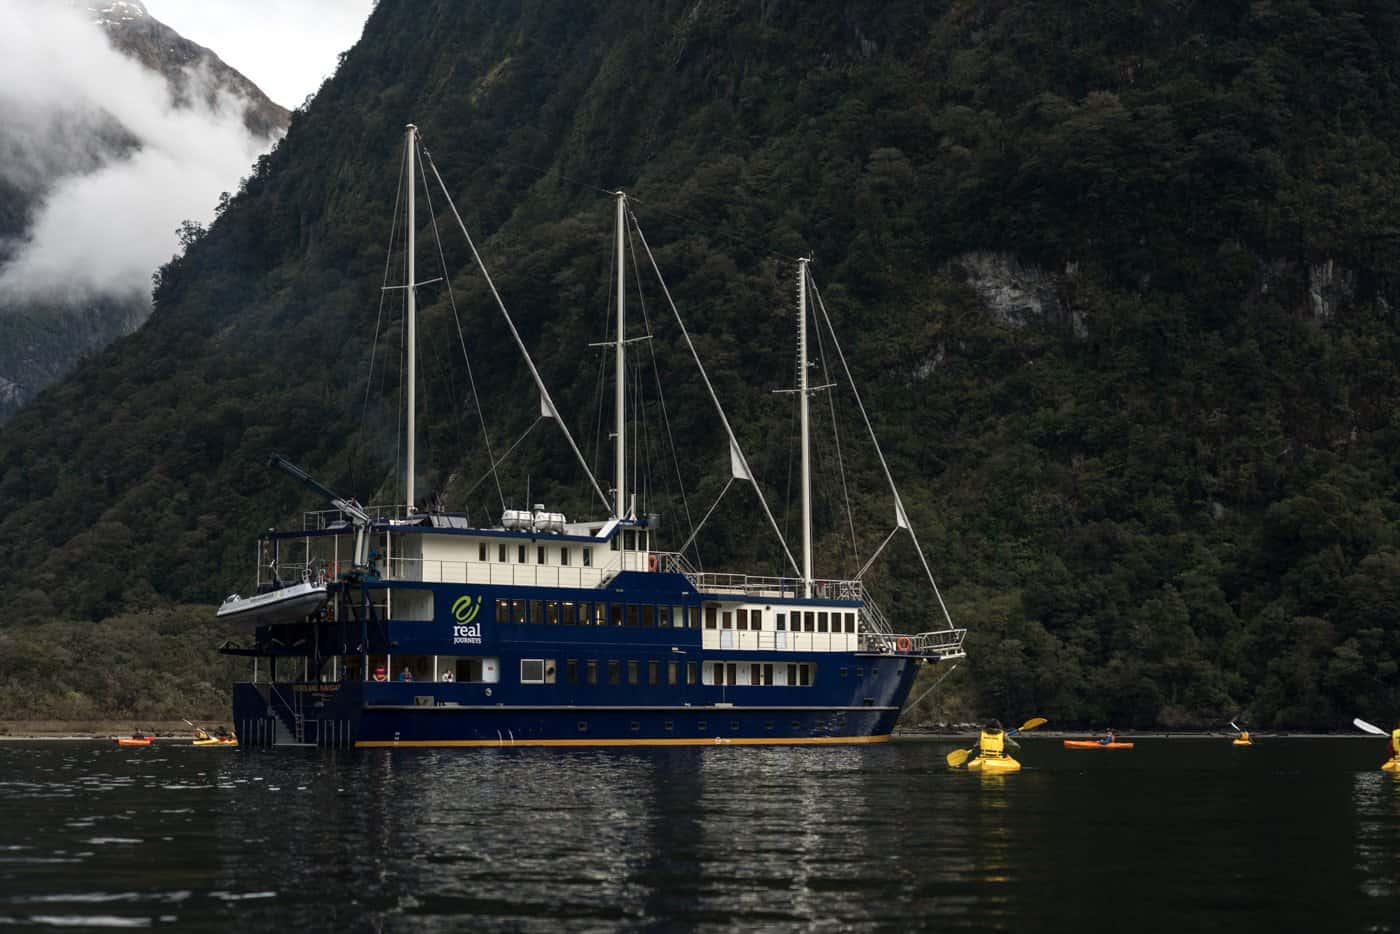 Real Journeys provided us with an unbeatable overnight cruise on the Doubtful Sound.